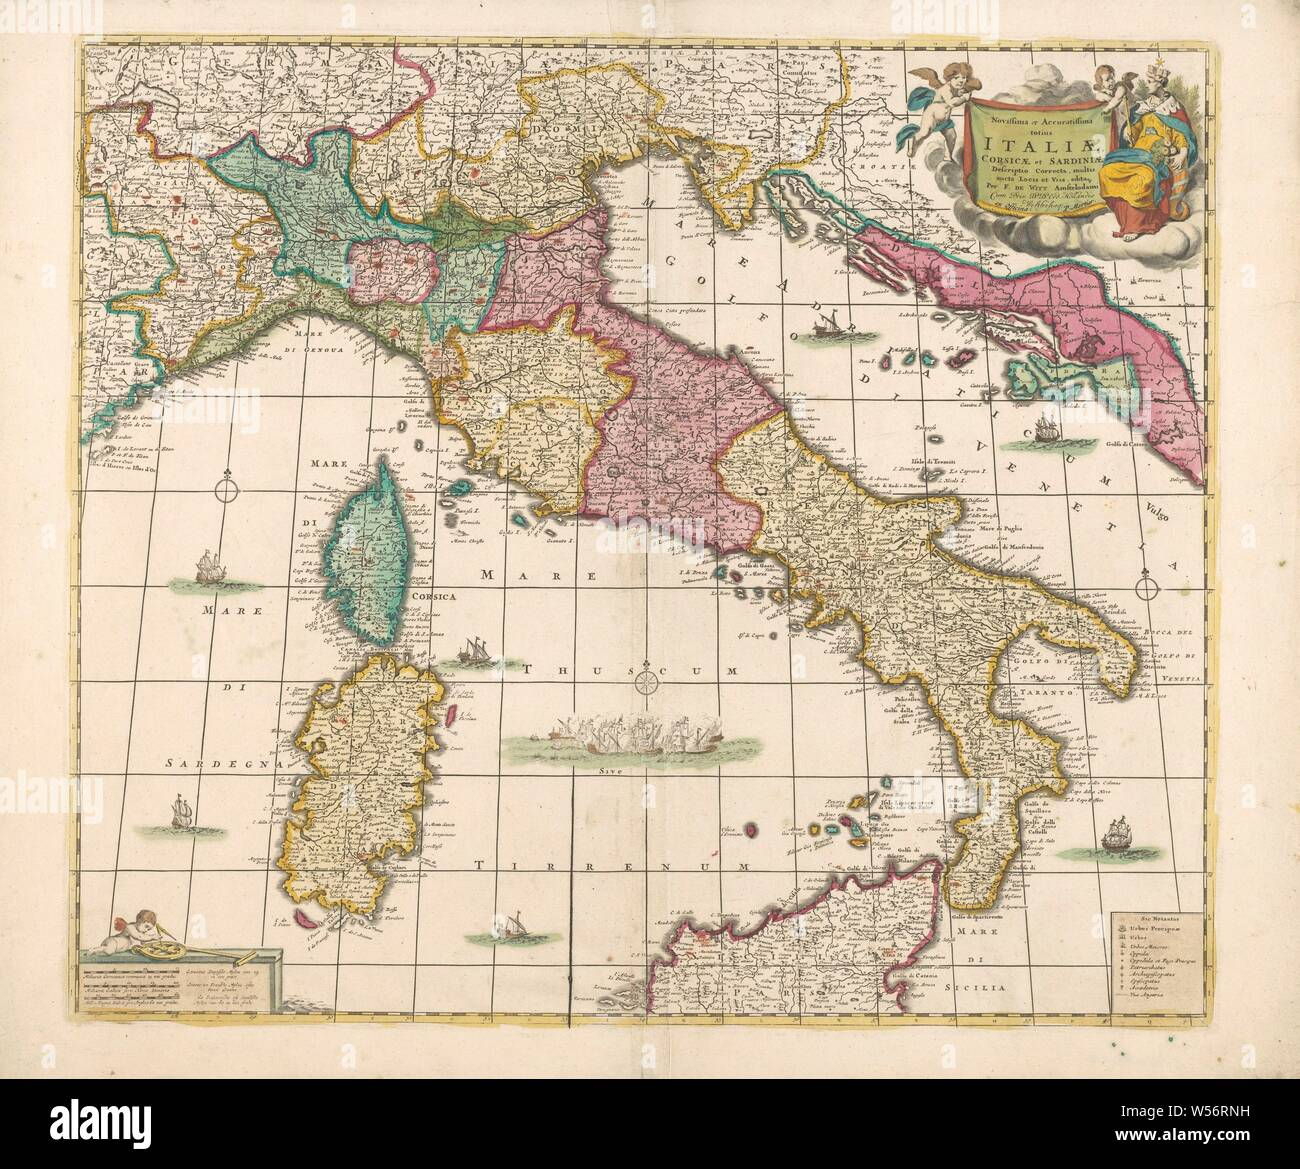 Areas Of Italy Map.Italy Map Stock Photos Italy Map Stock Images Alamy